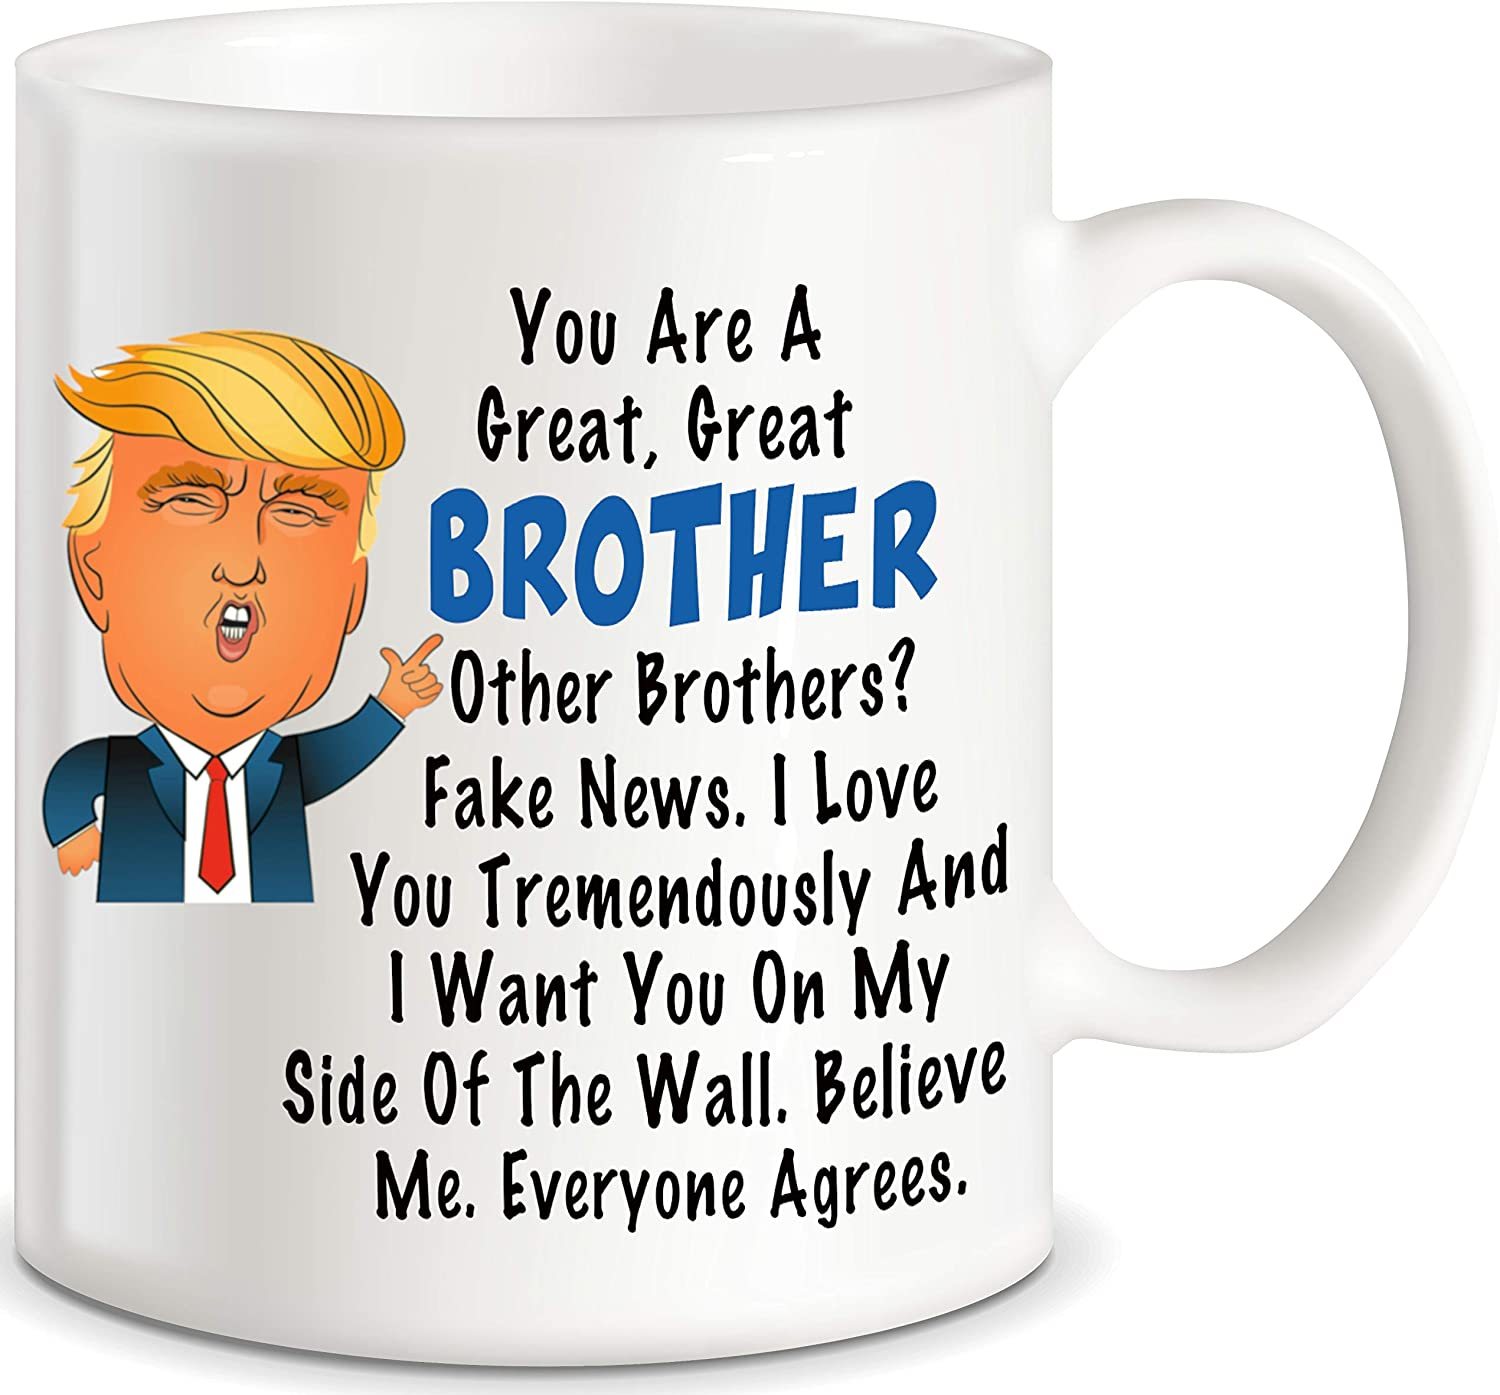 Donald Trump Terrific Brother Funny Coffee Mug Graduation Gifts for Brother from Sister Mom Dad Friend Funny Gifts for Brother for Christmas Birthday Fun Cup For Bro Men Him Guy Gag Gift Coffee Mug